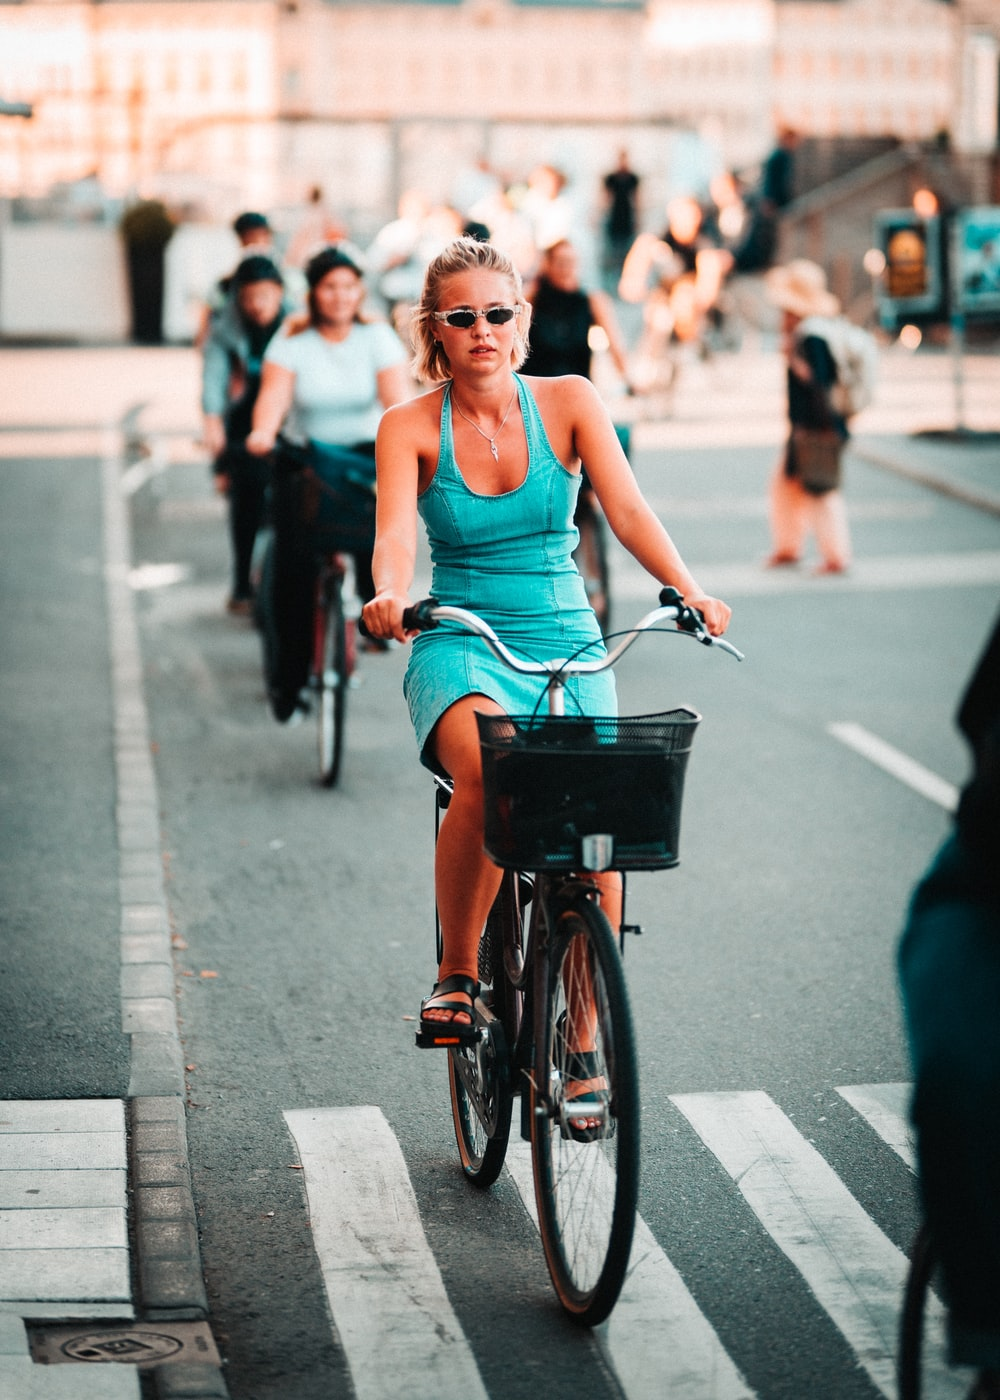 woman riding on black and gray road bike